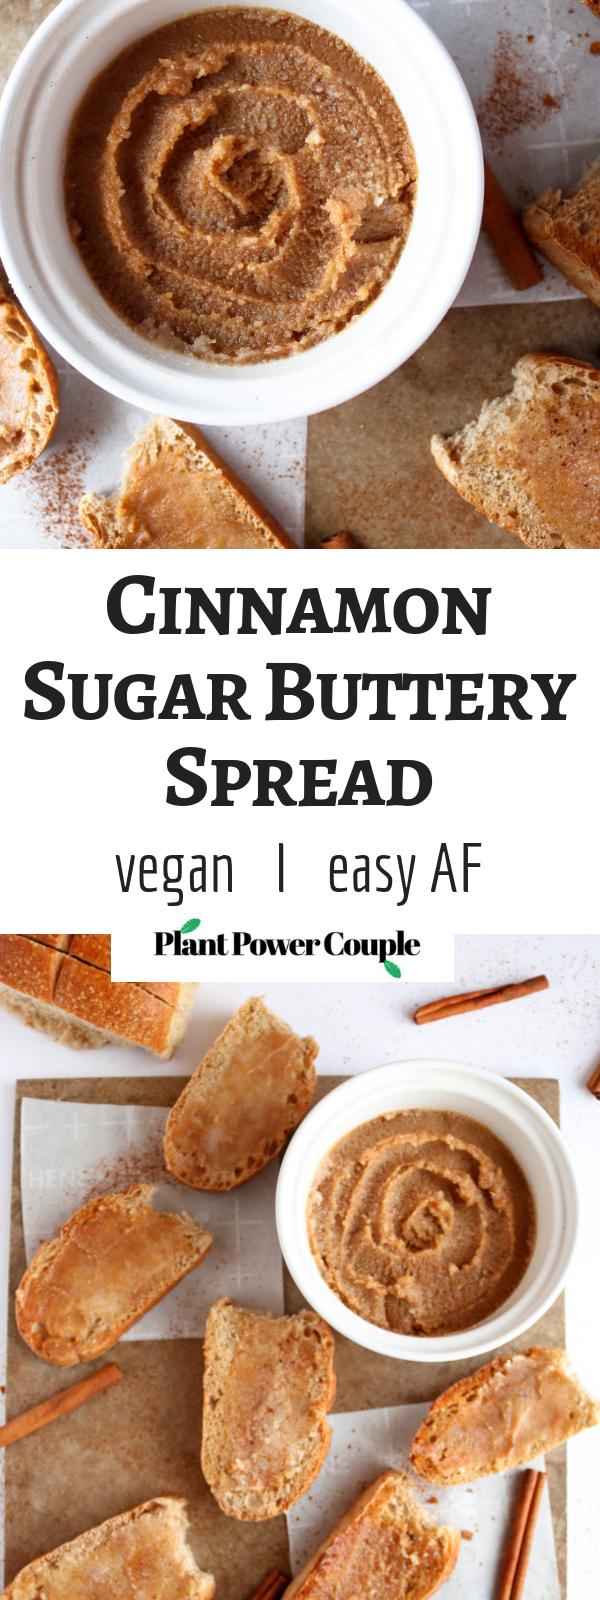 Make your own vegan cinnamon sugar butter! It's crazy easy to make and can be used on everything from pancakes to baked goods to a simple morning toast. #vegan #butter #cinnamon #recipe // plantpowercouple.com